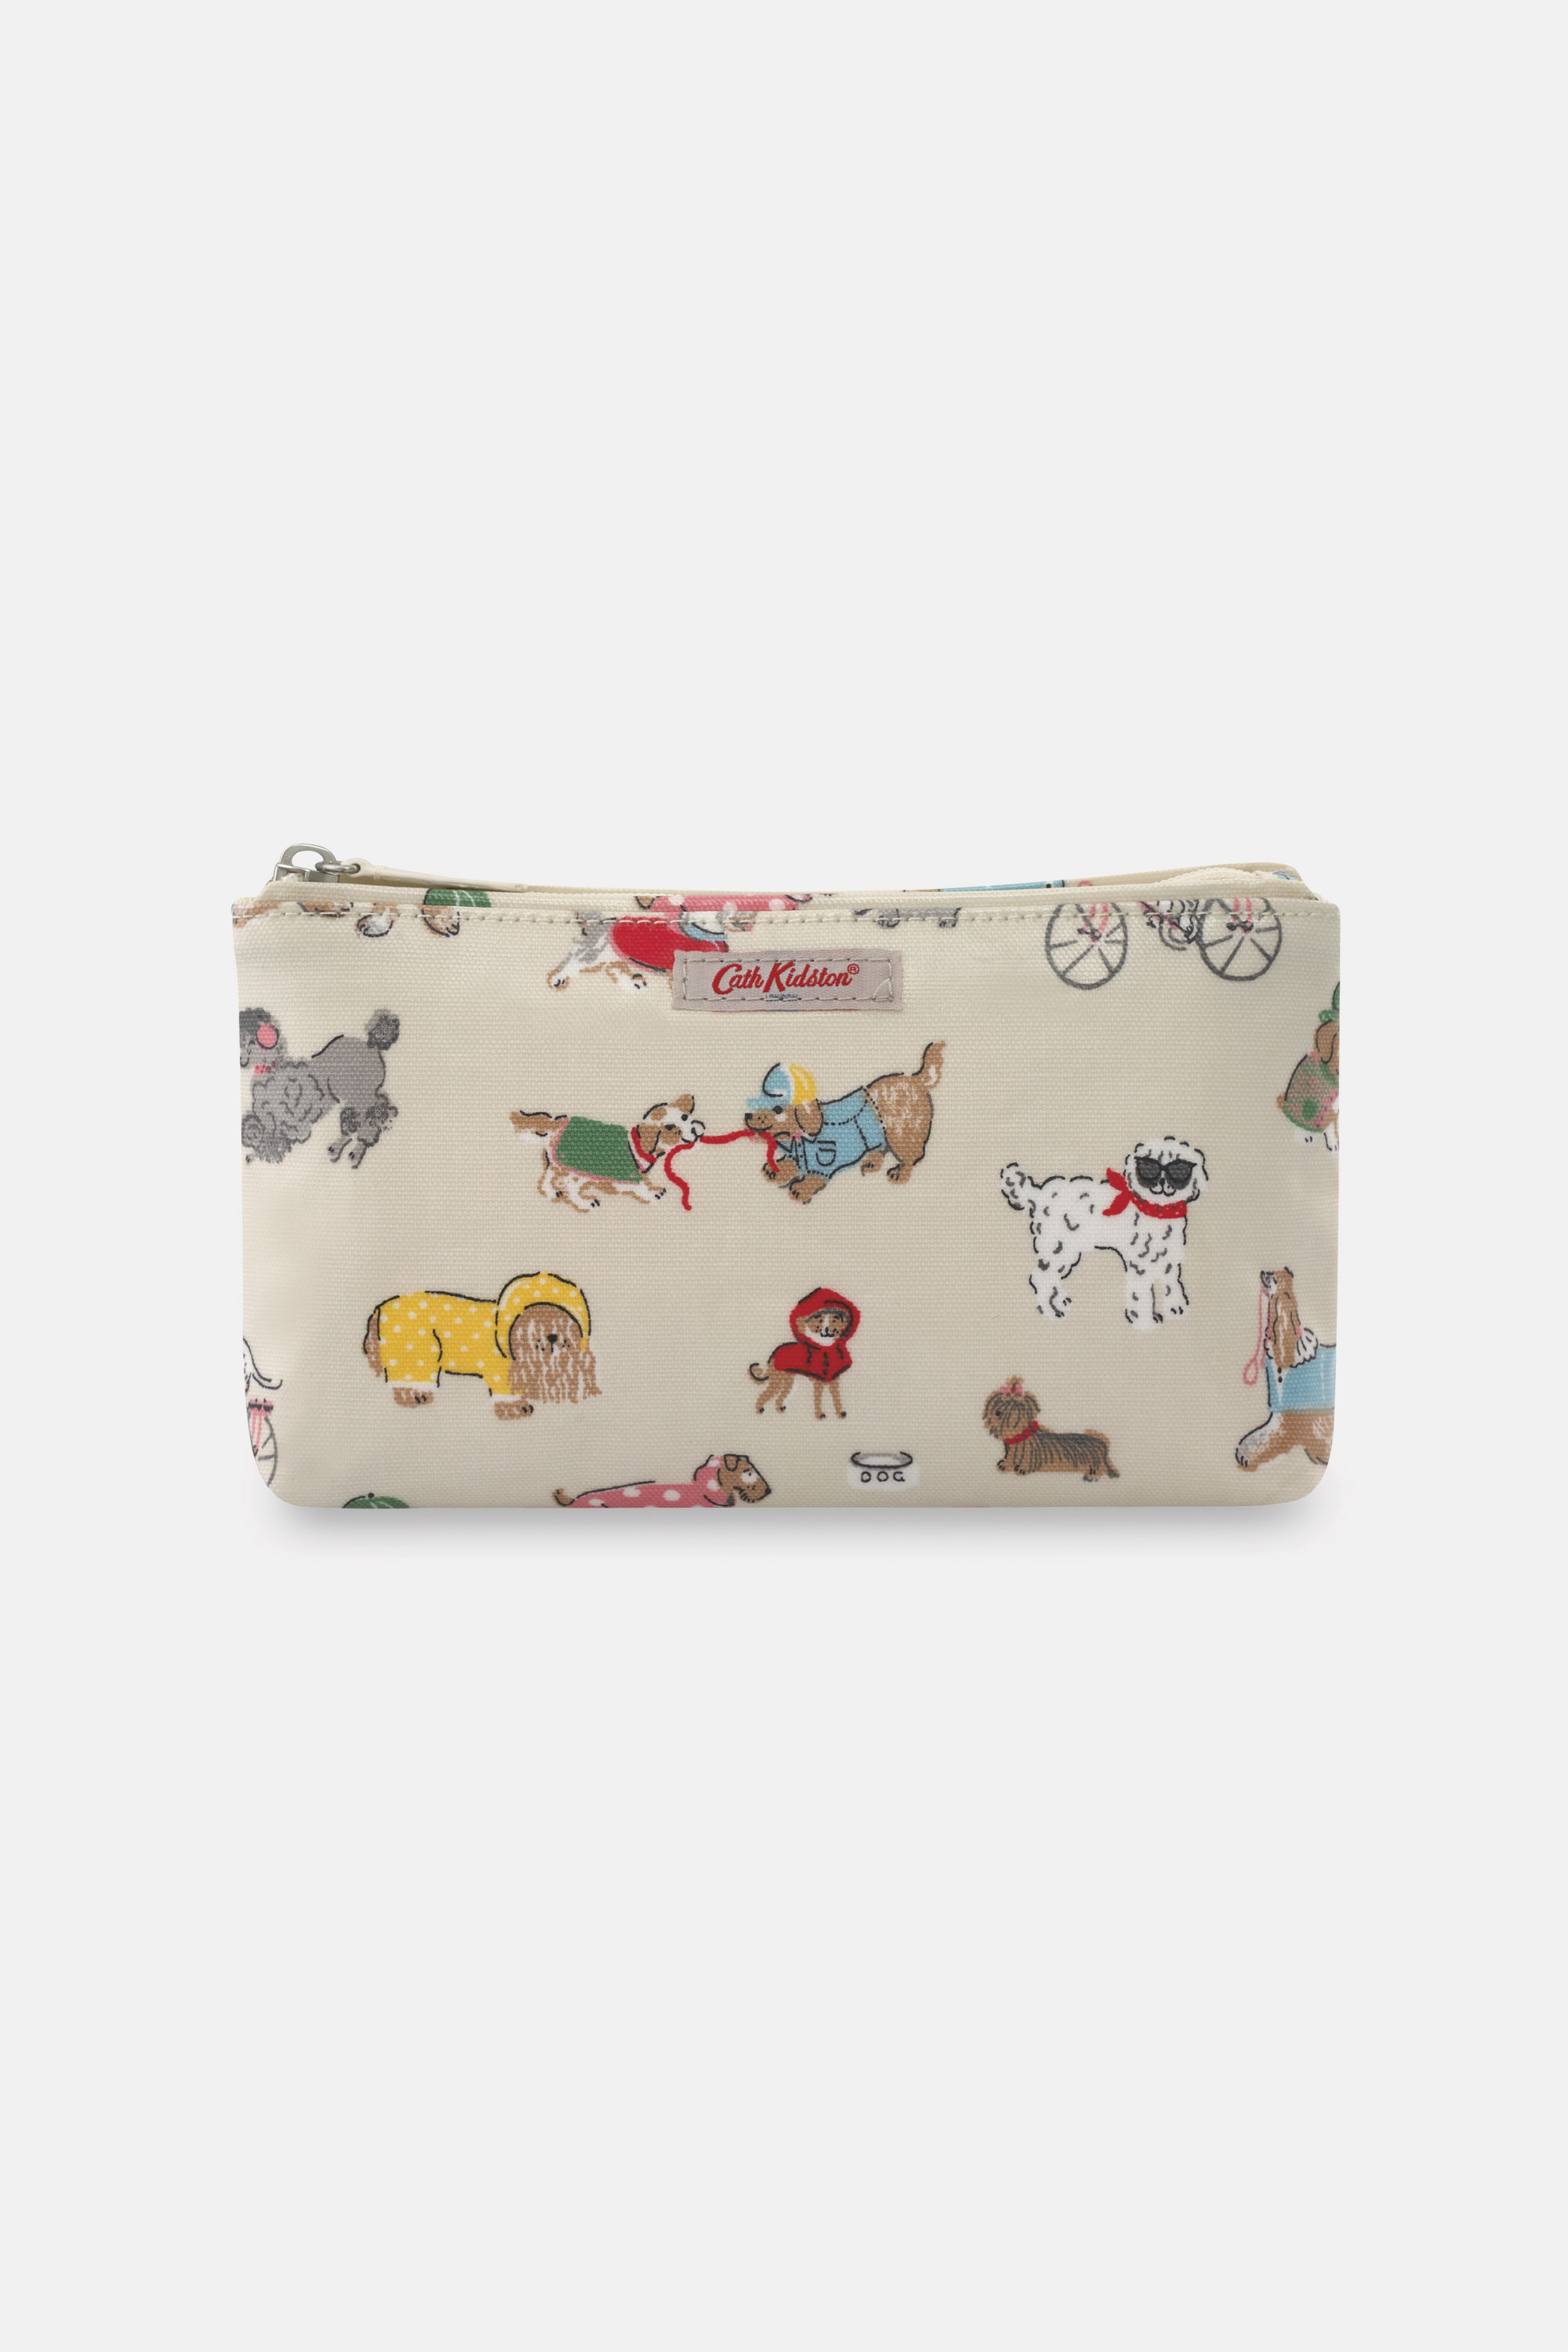 Cath Kidston Small Park Dogs Make Up Bag in Warm Cream